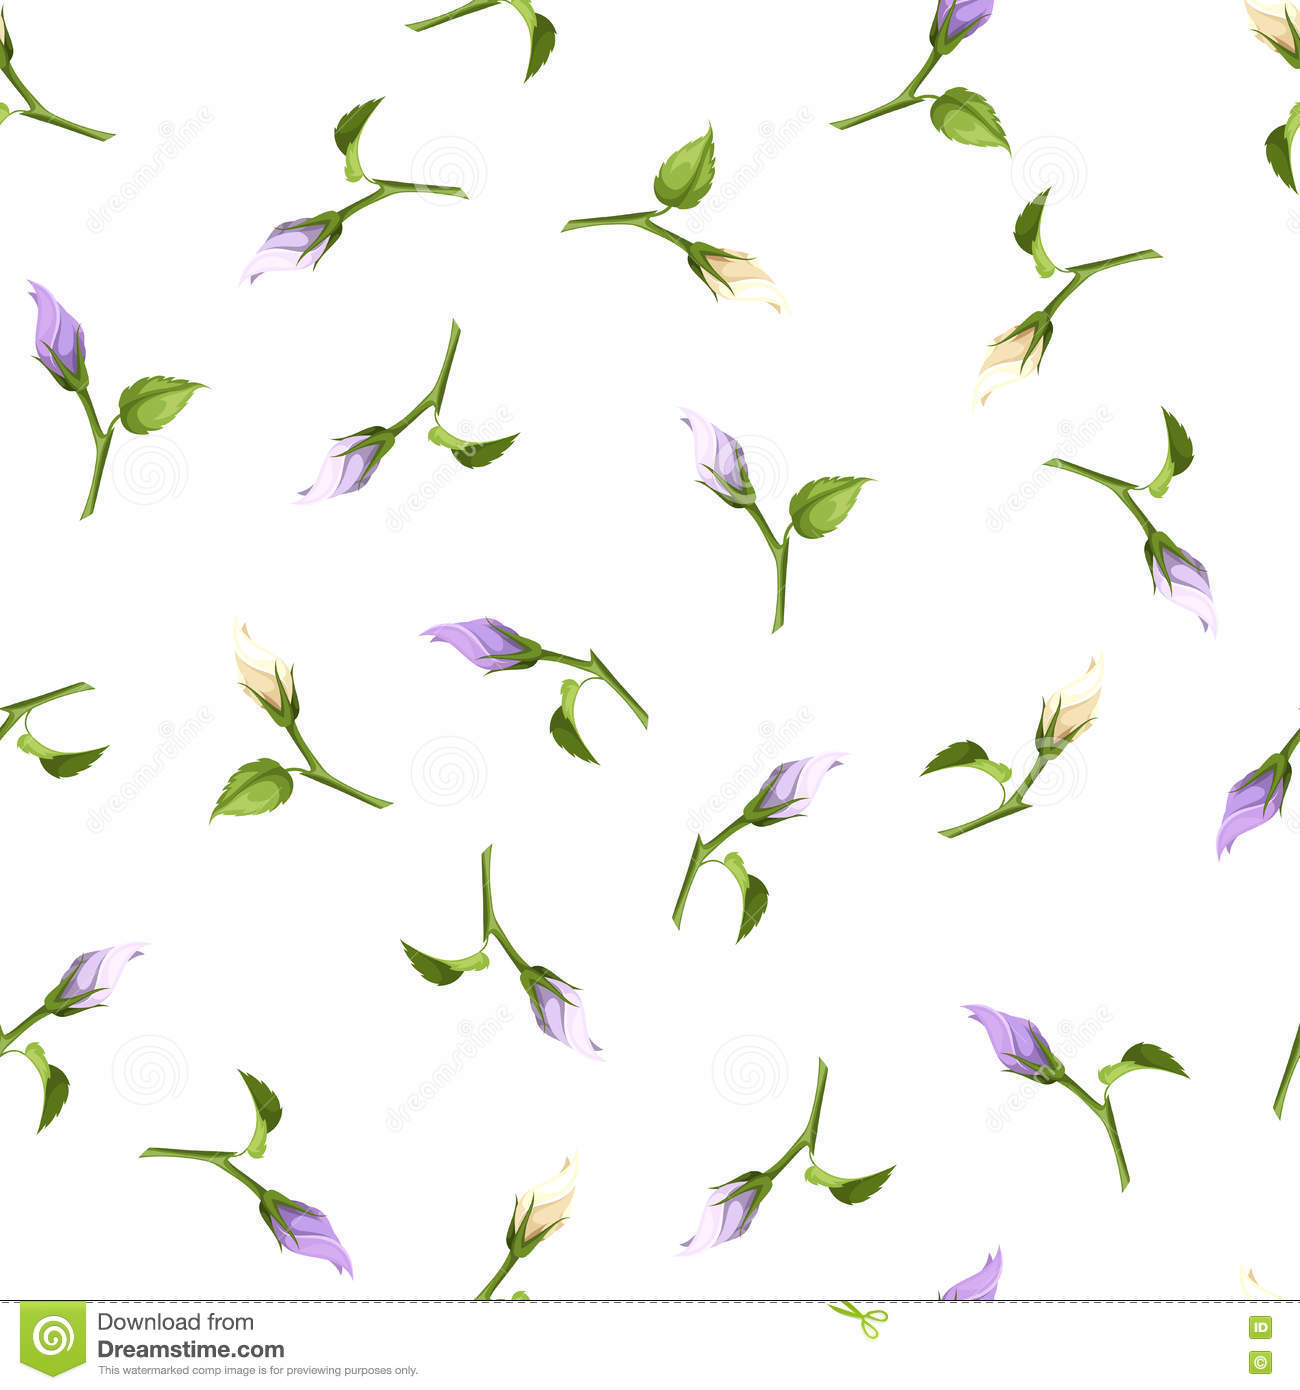 Seamless Pattern With Purple And White Flower Buds. Vector.